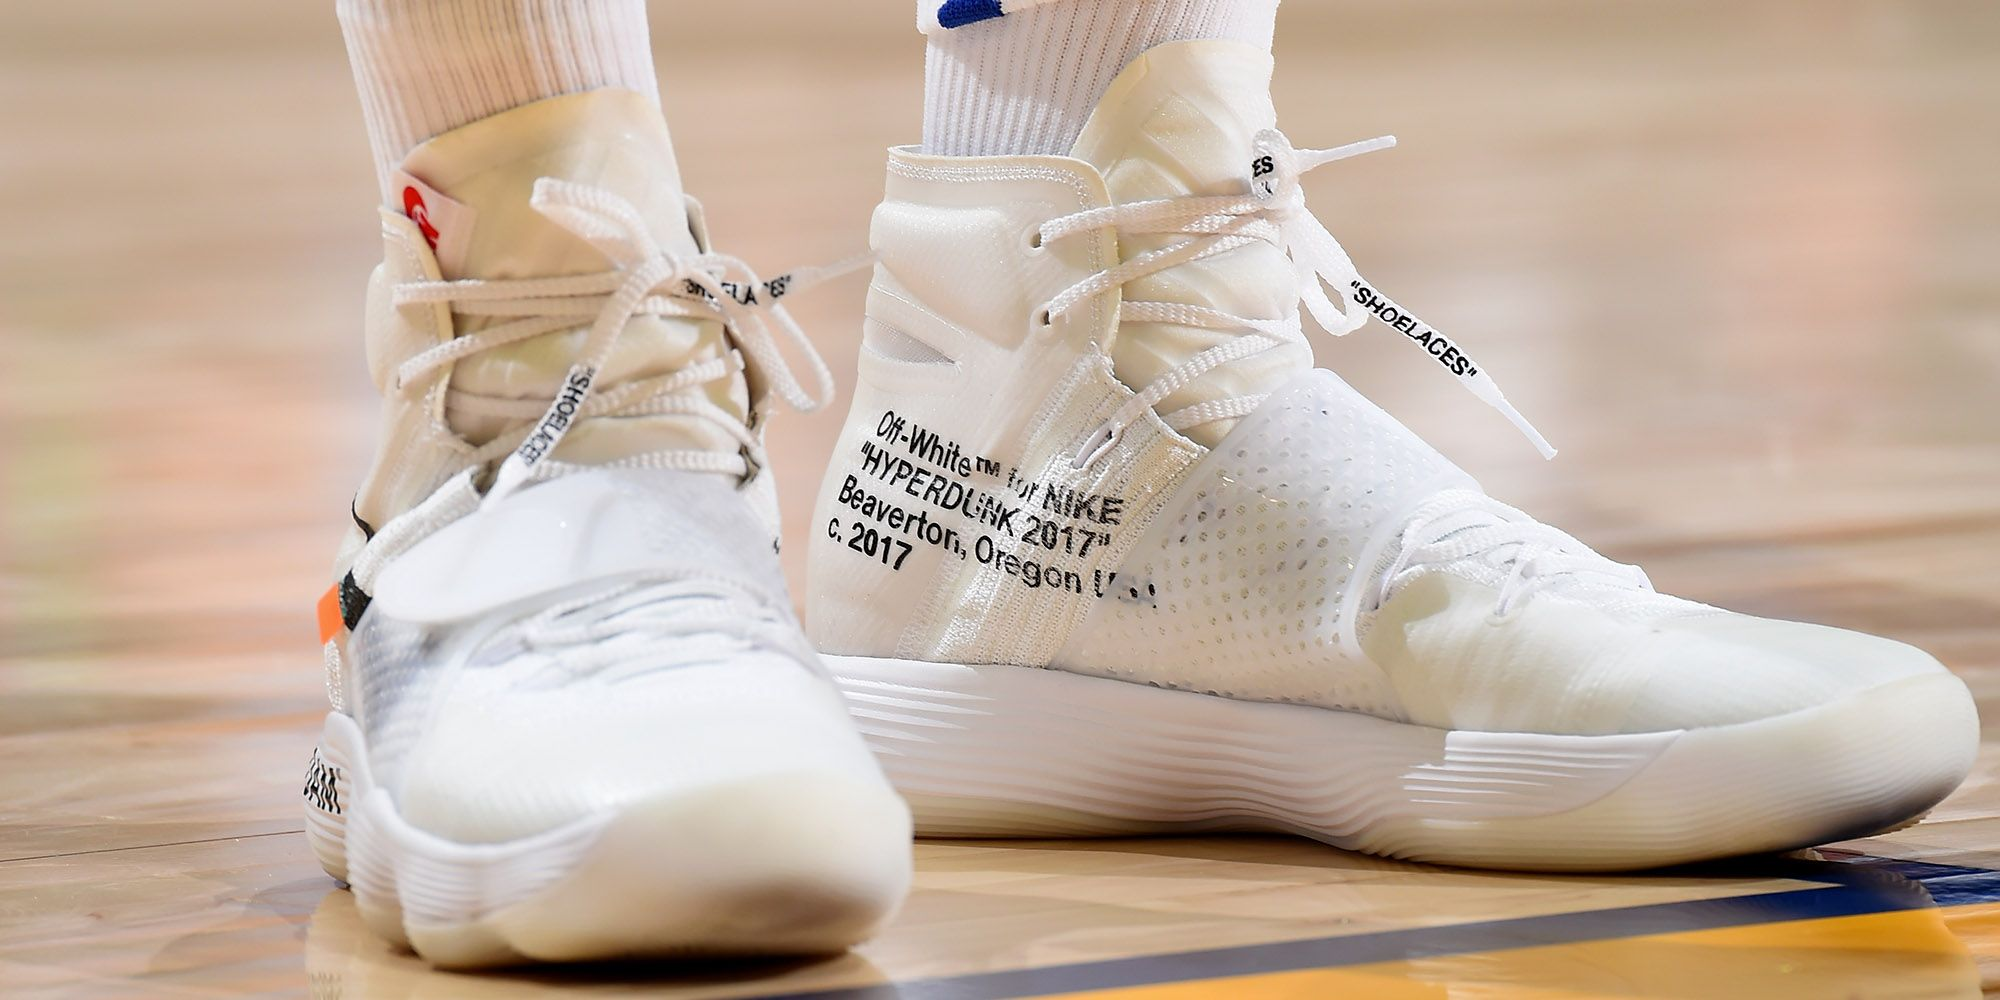 dd0ae54f63d3 usa nike hyperdunk 2016 draymond green black white e5af9 ff401  authentic draymond  green wore off white sneakers stylish nba sneakers cd29c 257e6